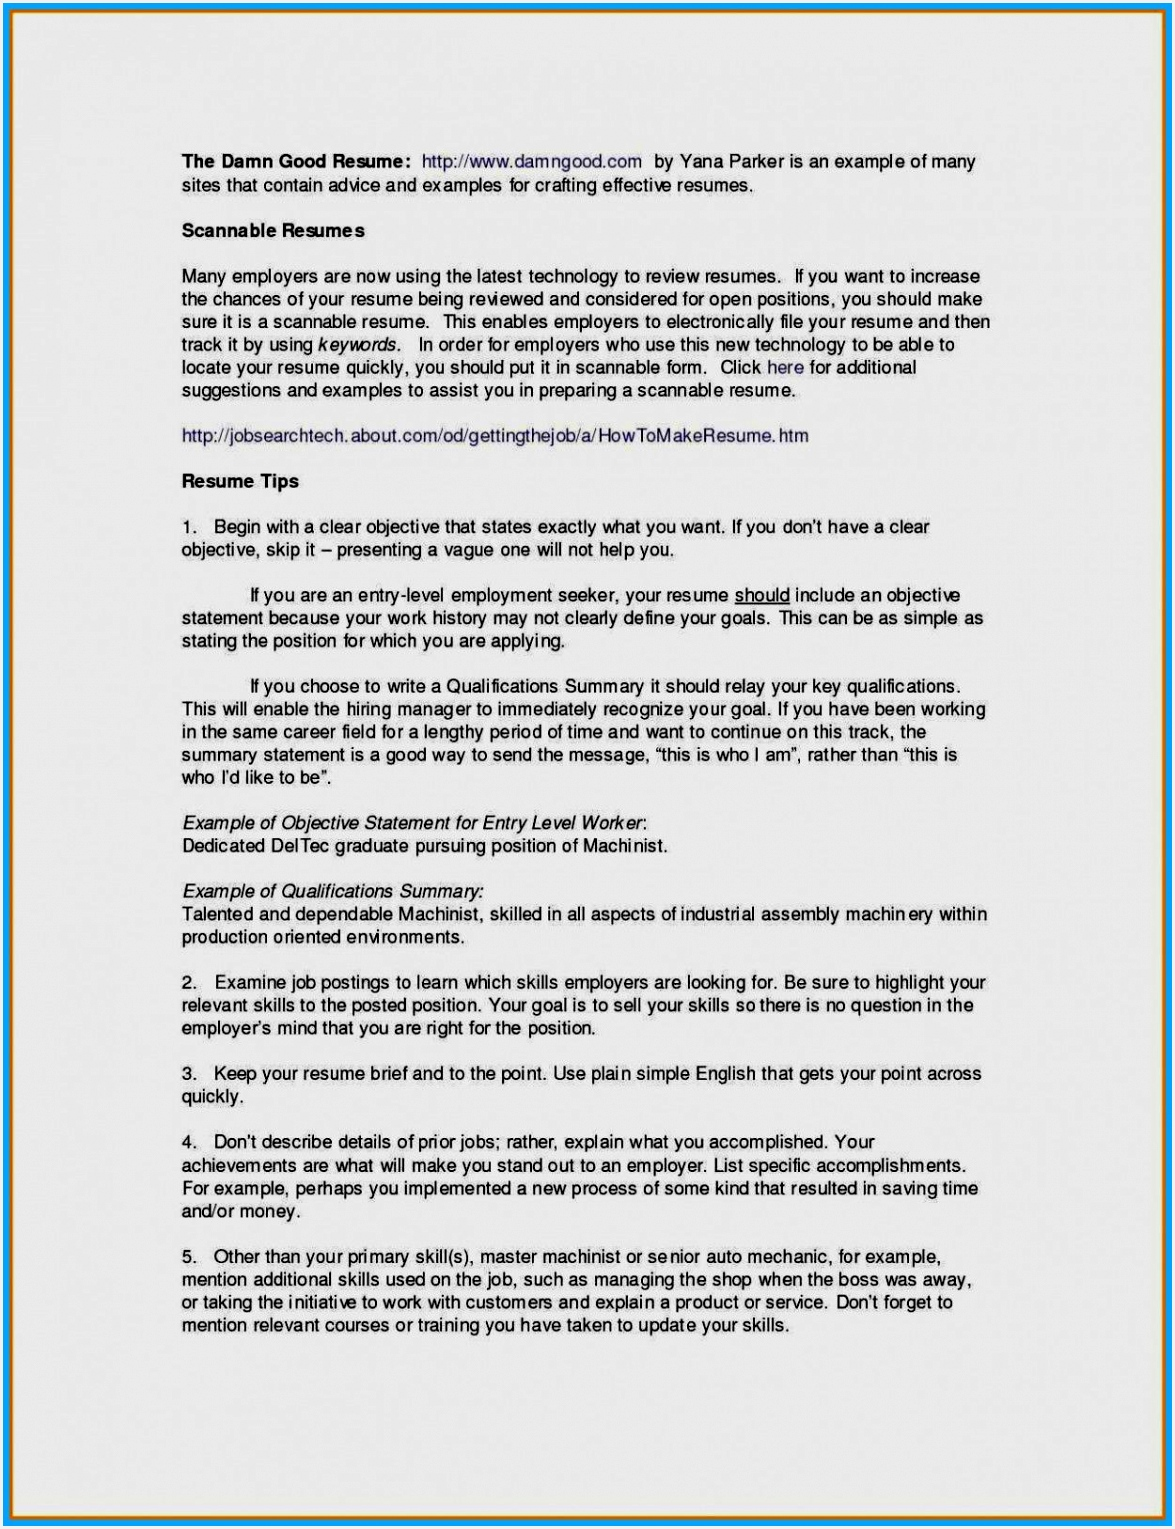 Resume format for Postgraduate Students Cnduq Awesome 66 Cool Self Employed Resume Examples Pdf15291175